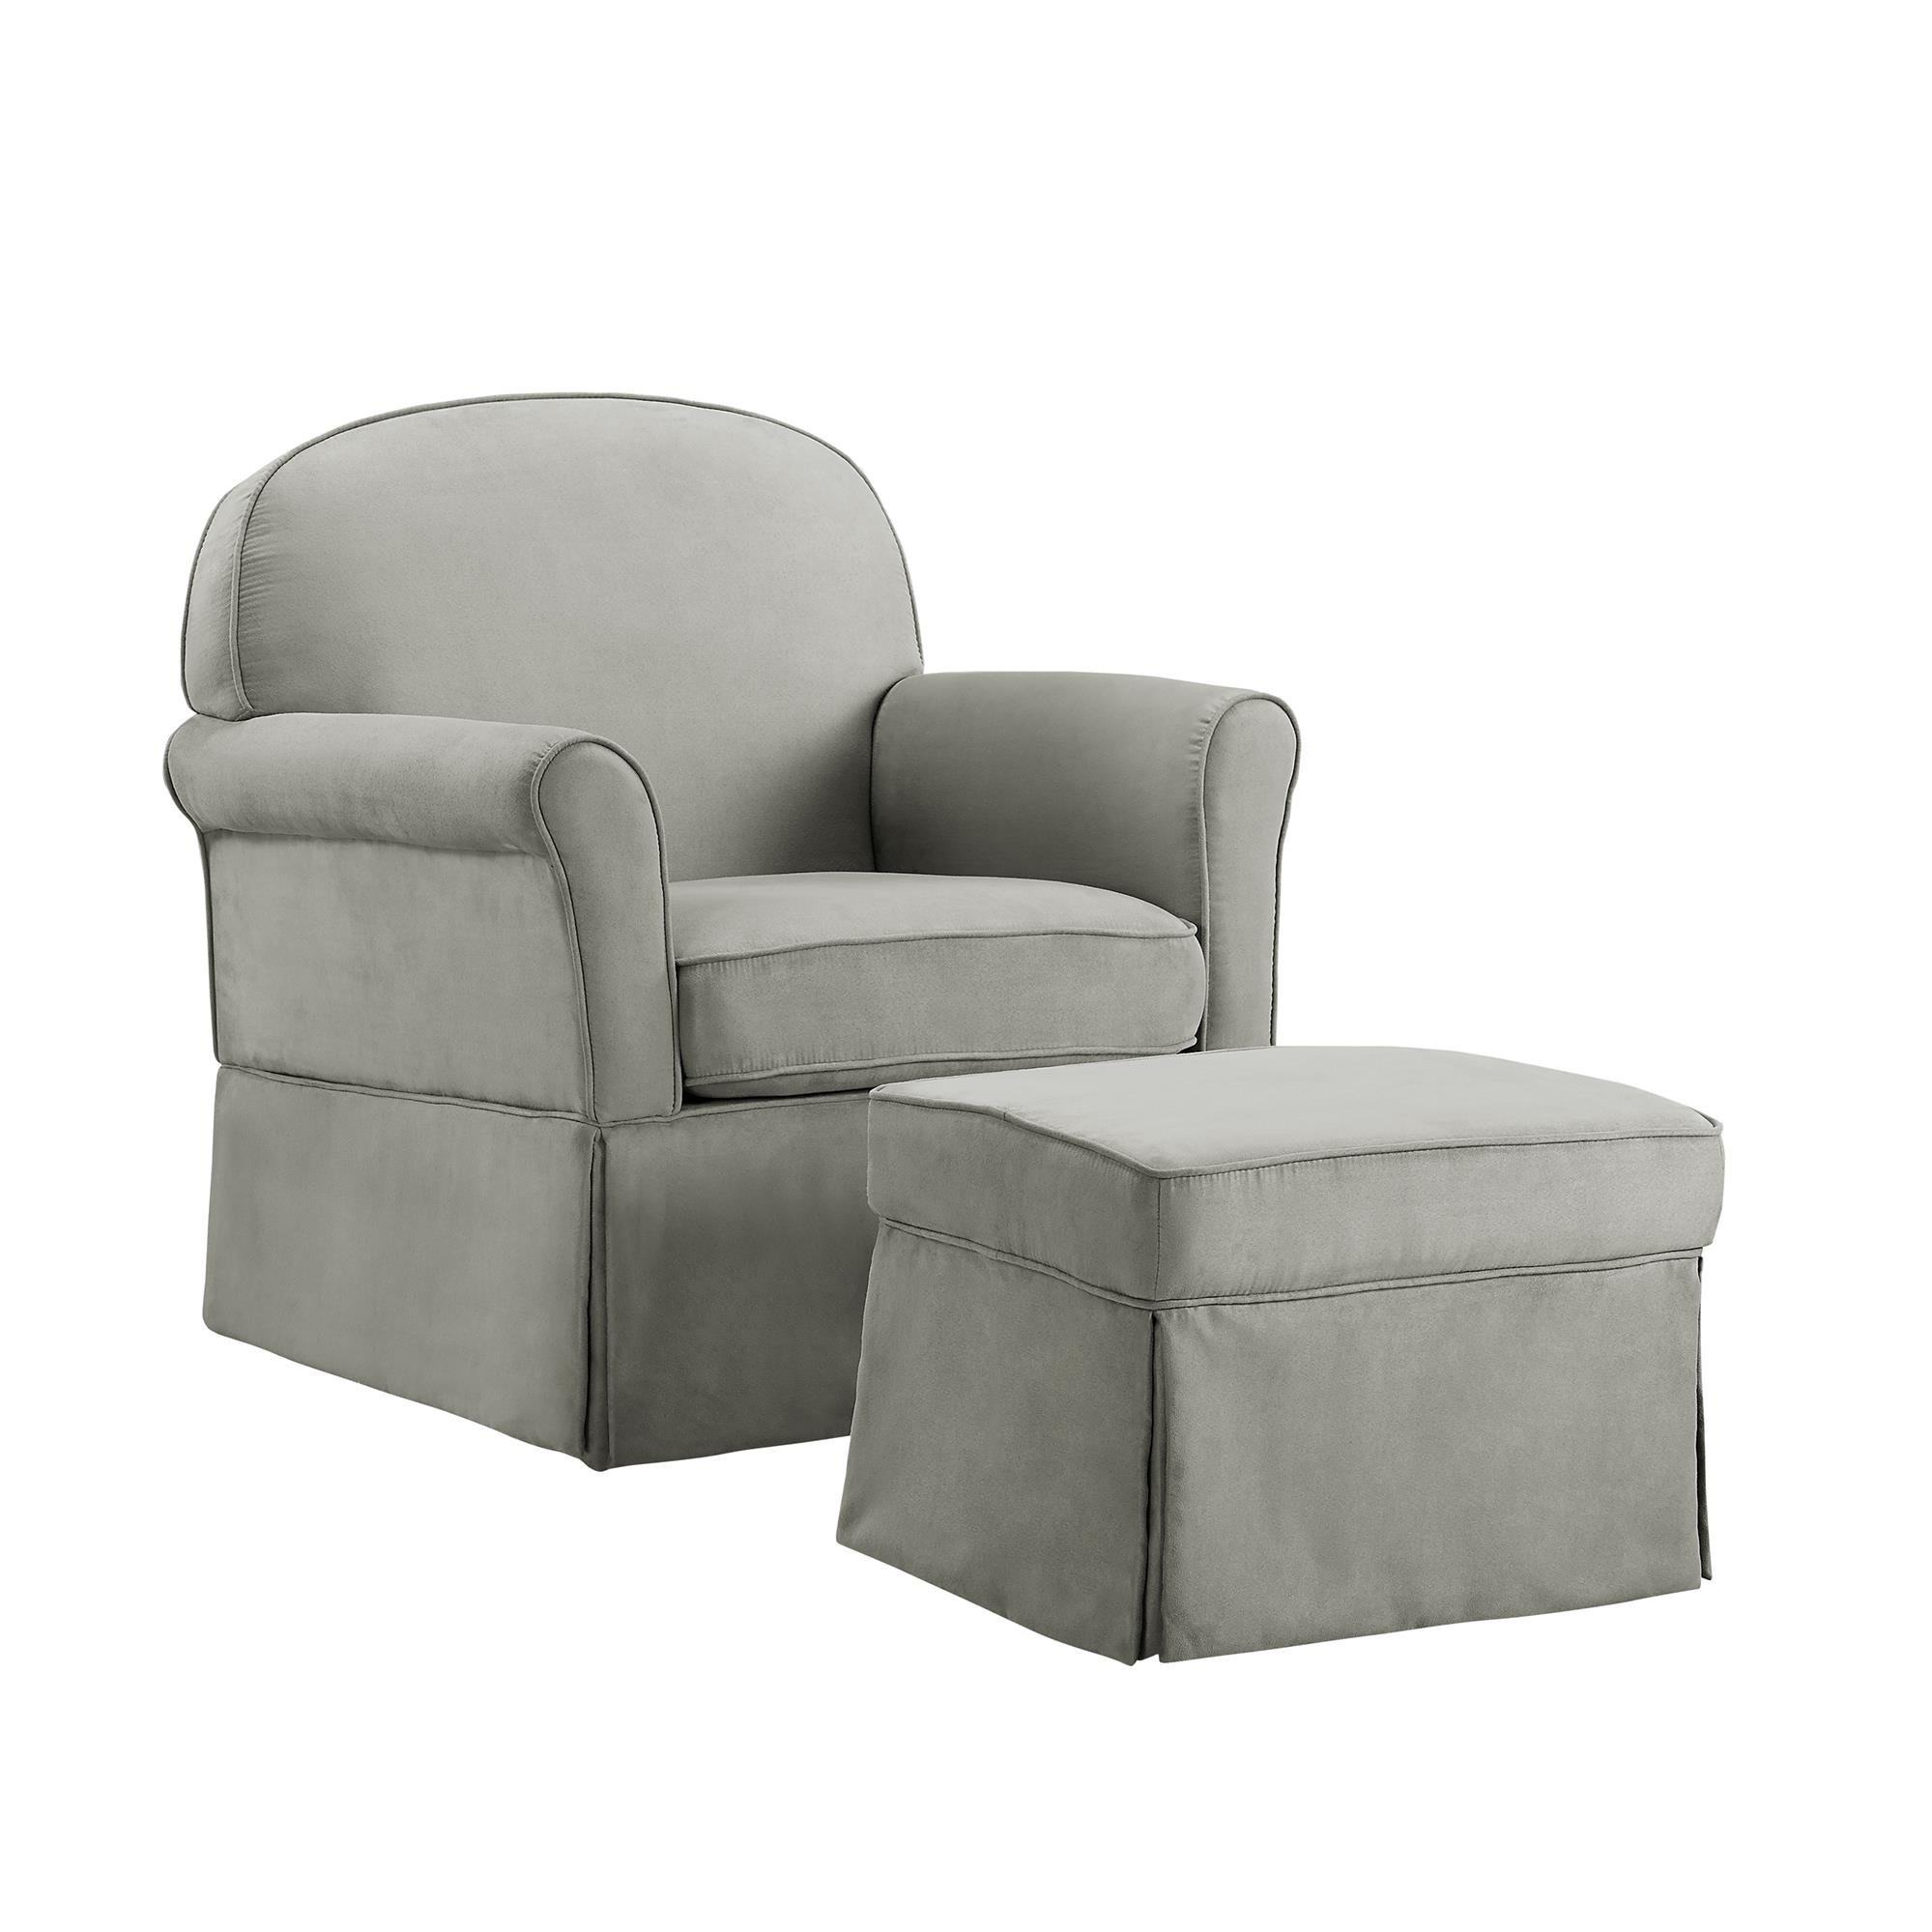 Baby Relax Swivel Glider Chair and Ottoman Set, Light Gray Microfiber by Baby Relax